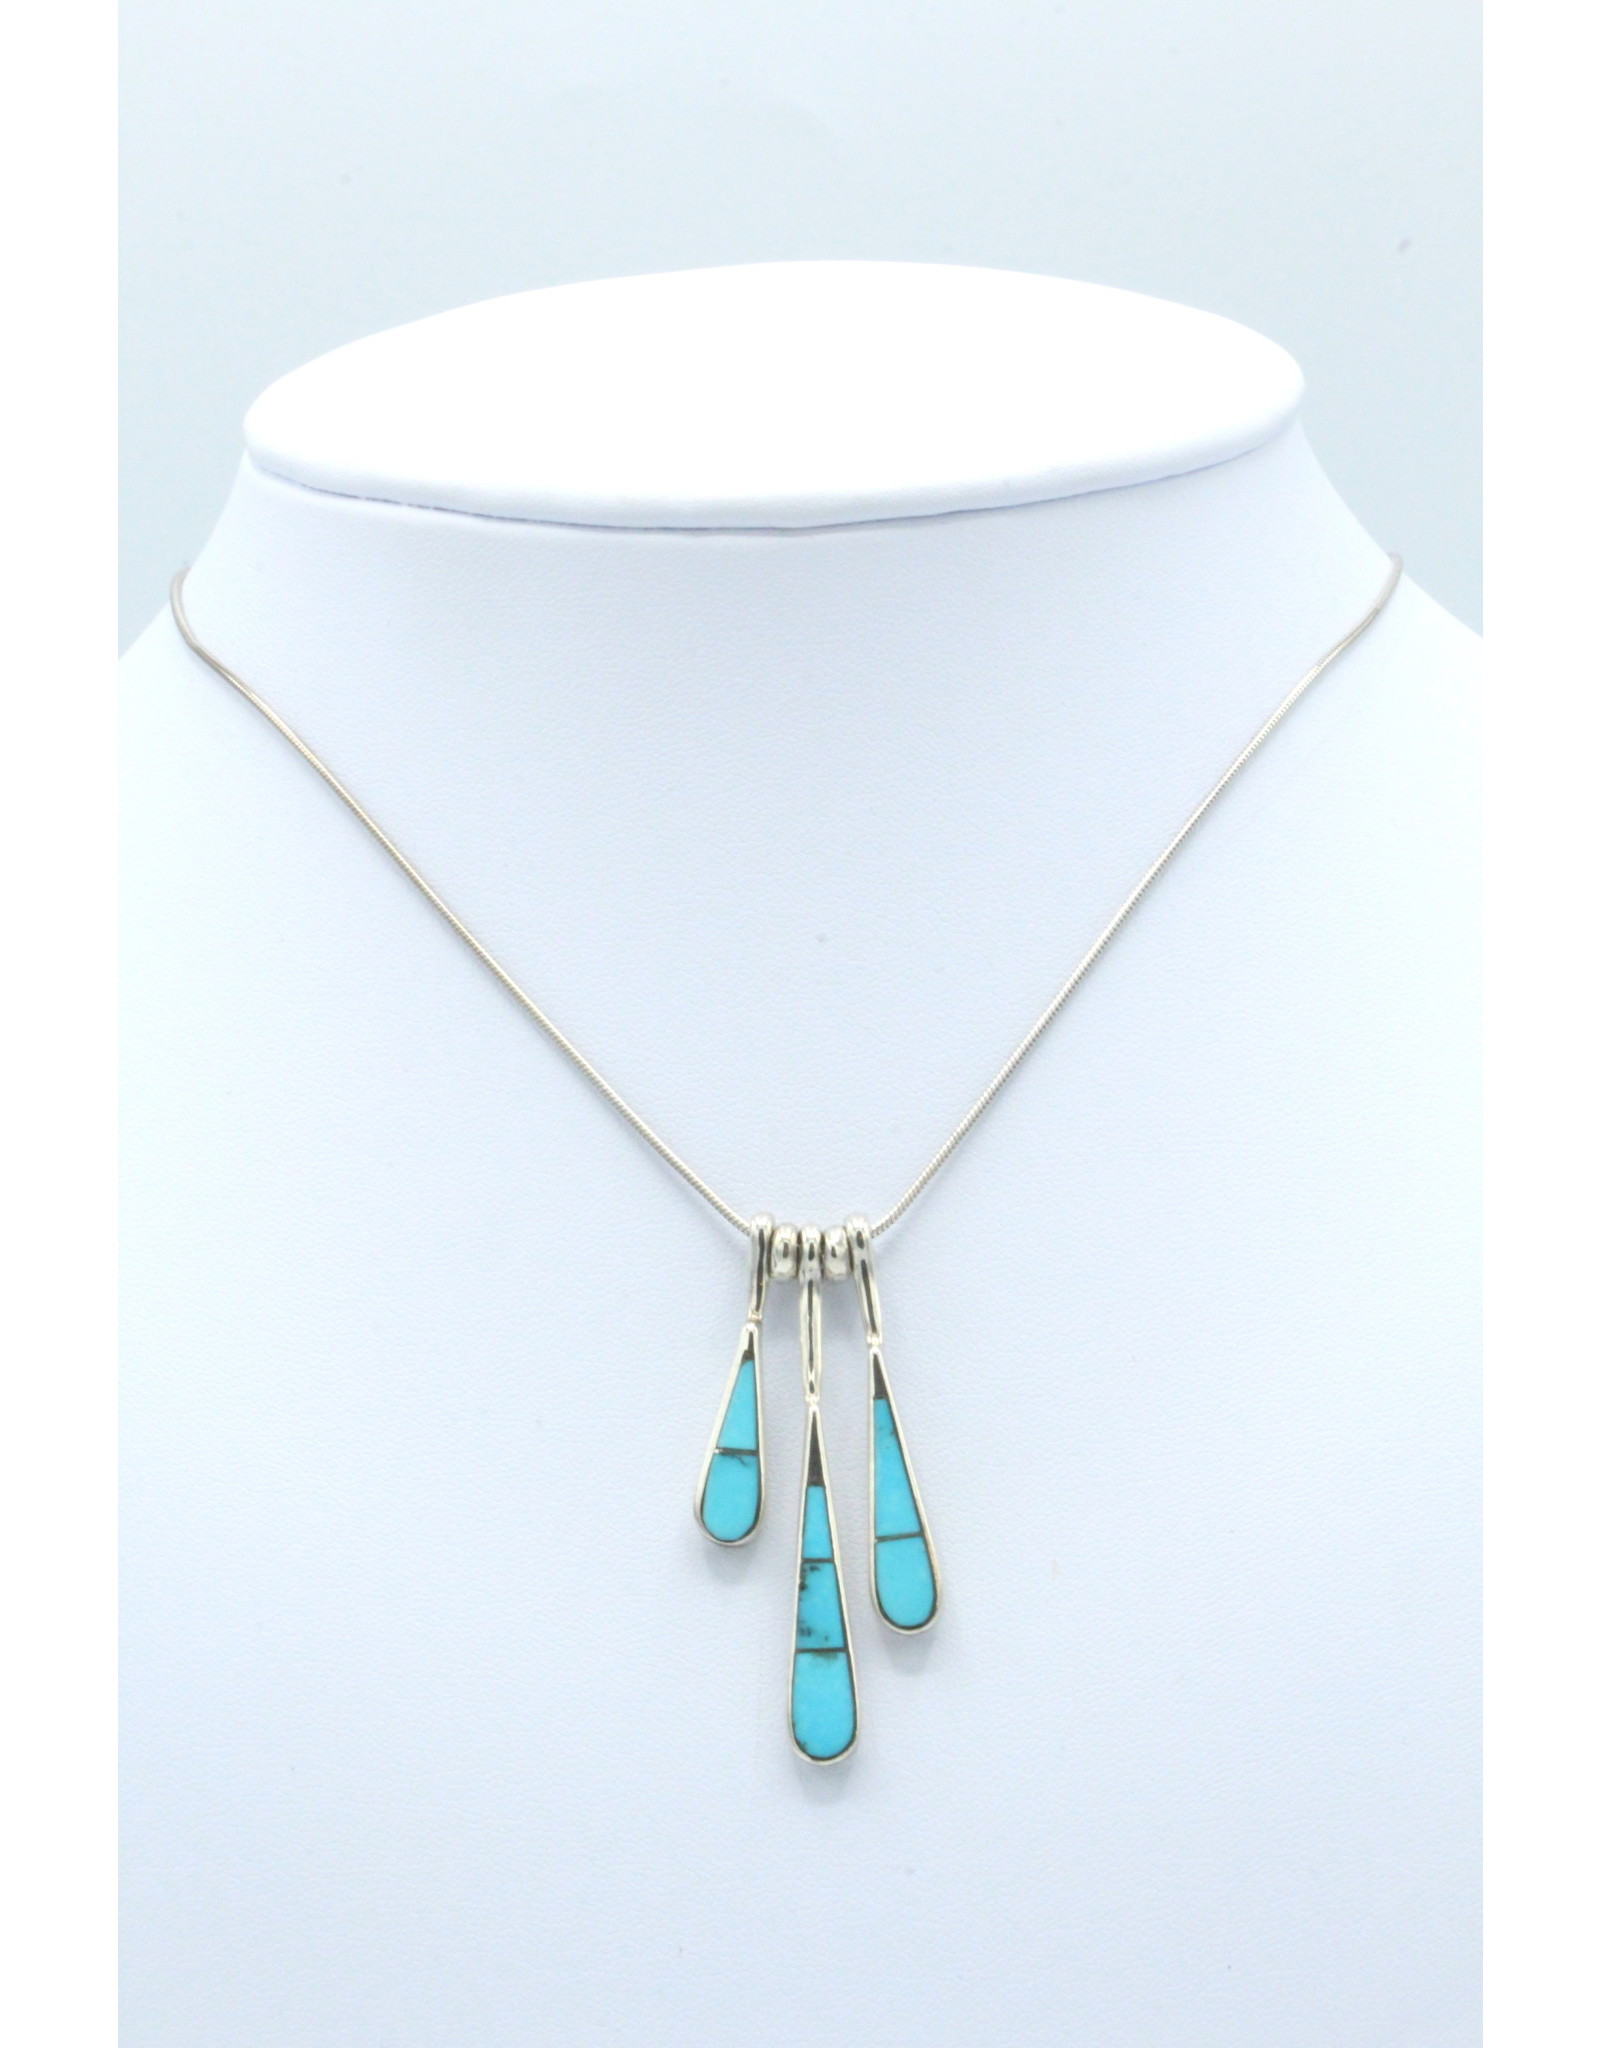 3 Tear Necklace Turquoise - N108-61